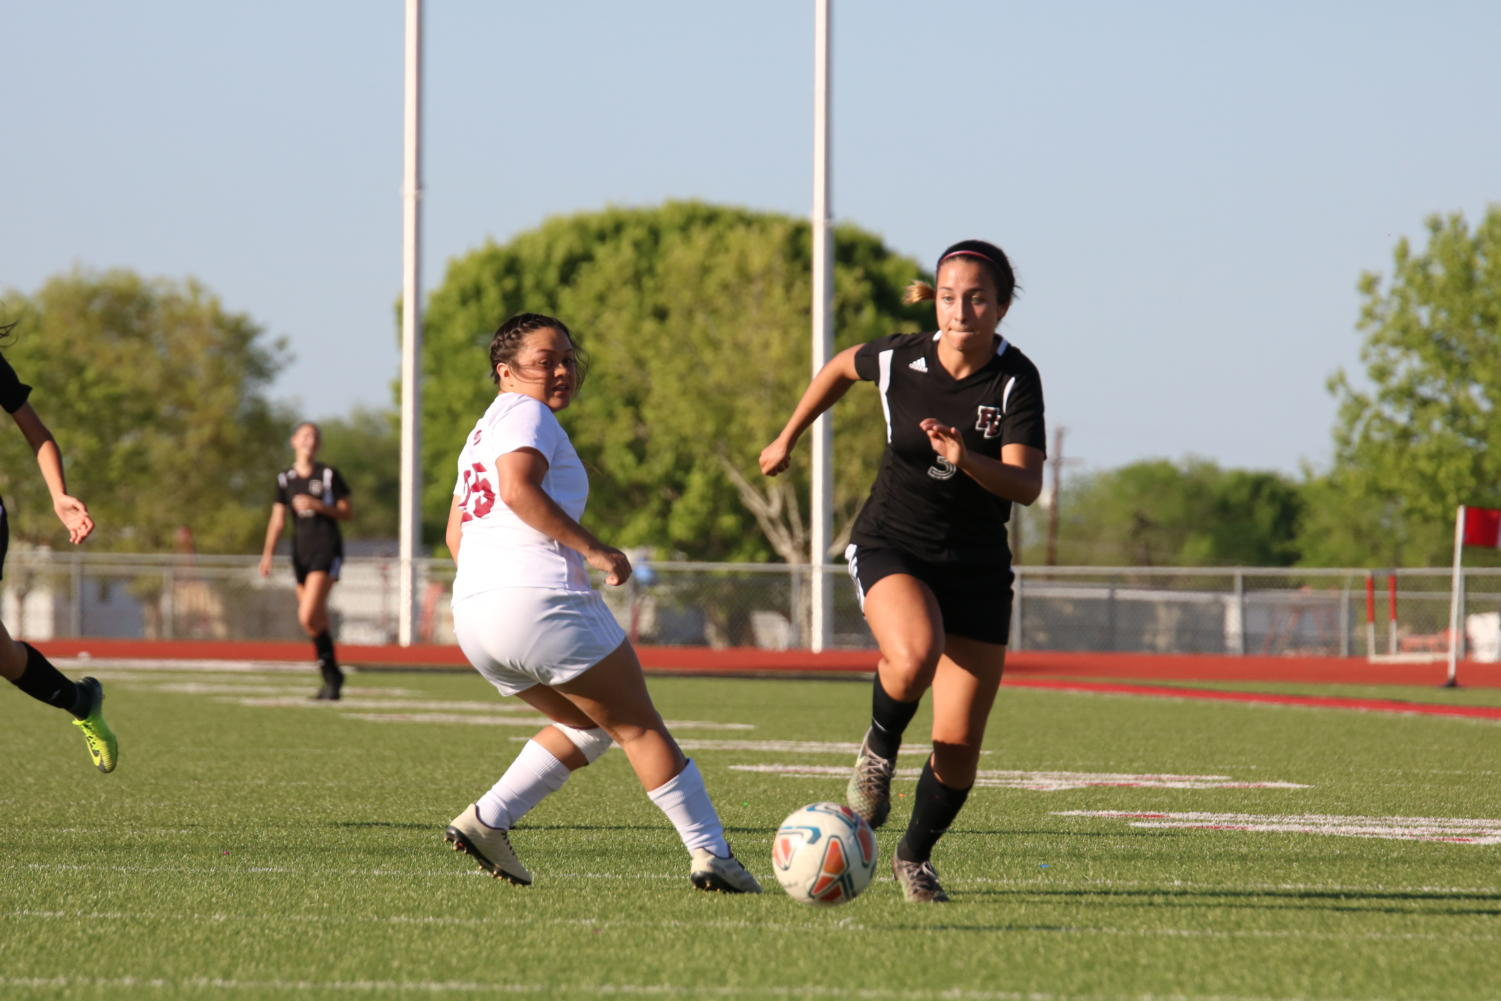 Junior Liv Cerna gets past a defender in a game against Uvalde on March 29. Flour Bluff won 1-0.